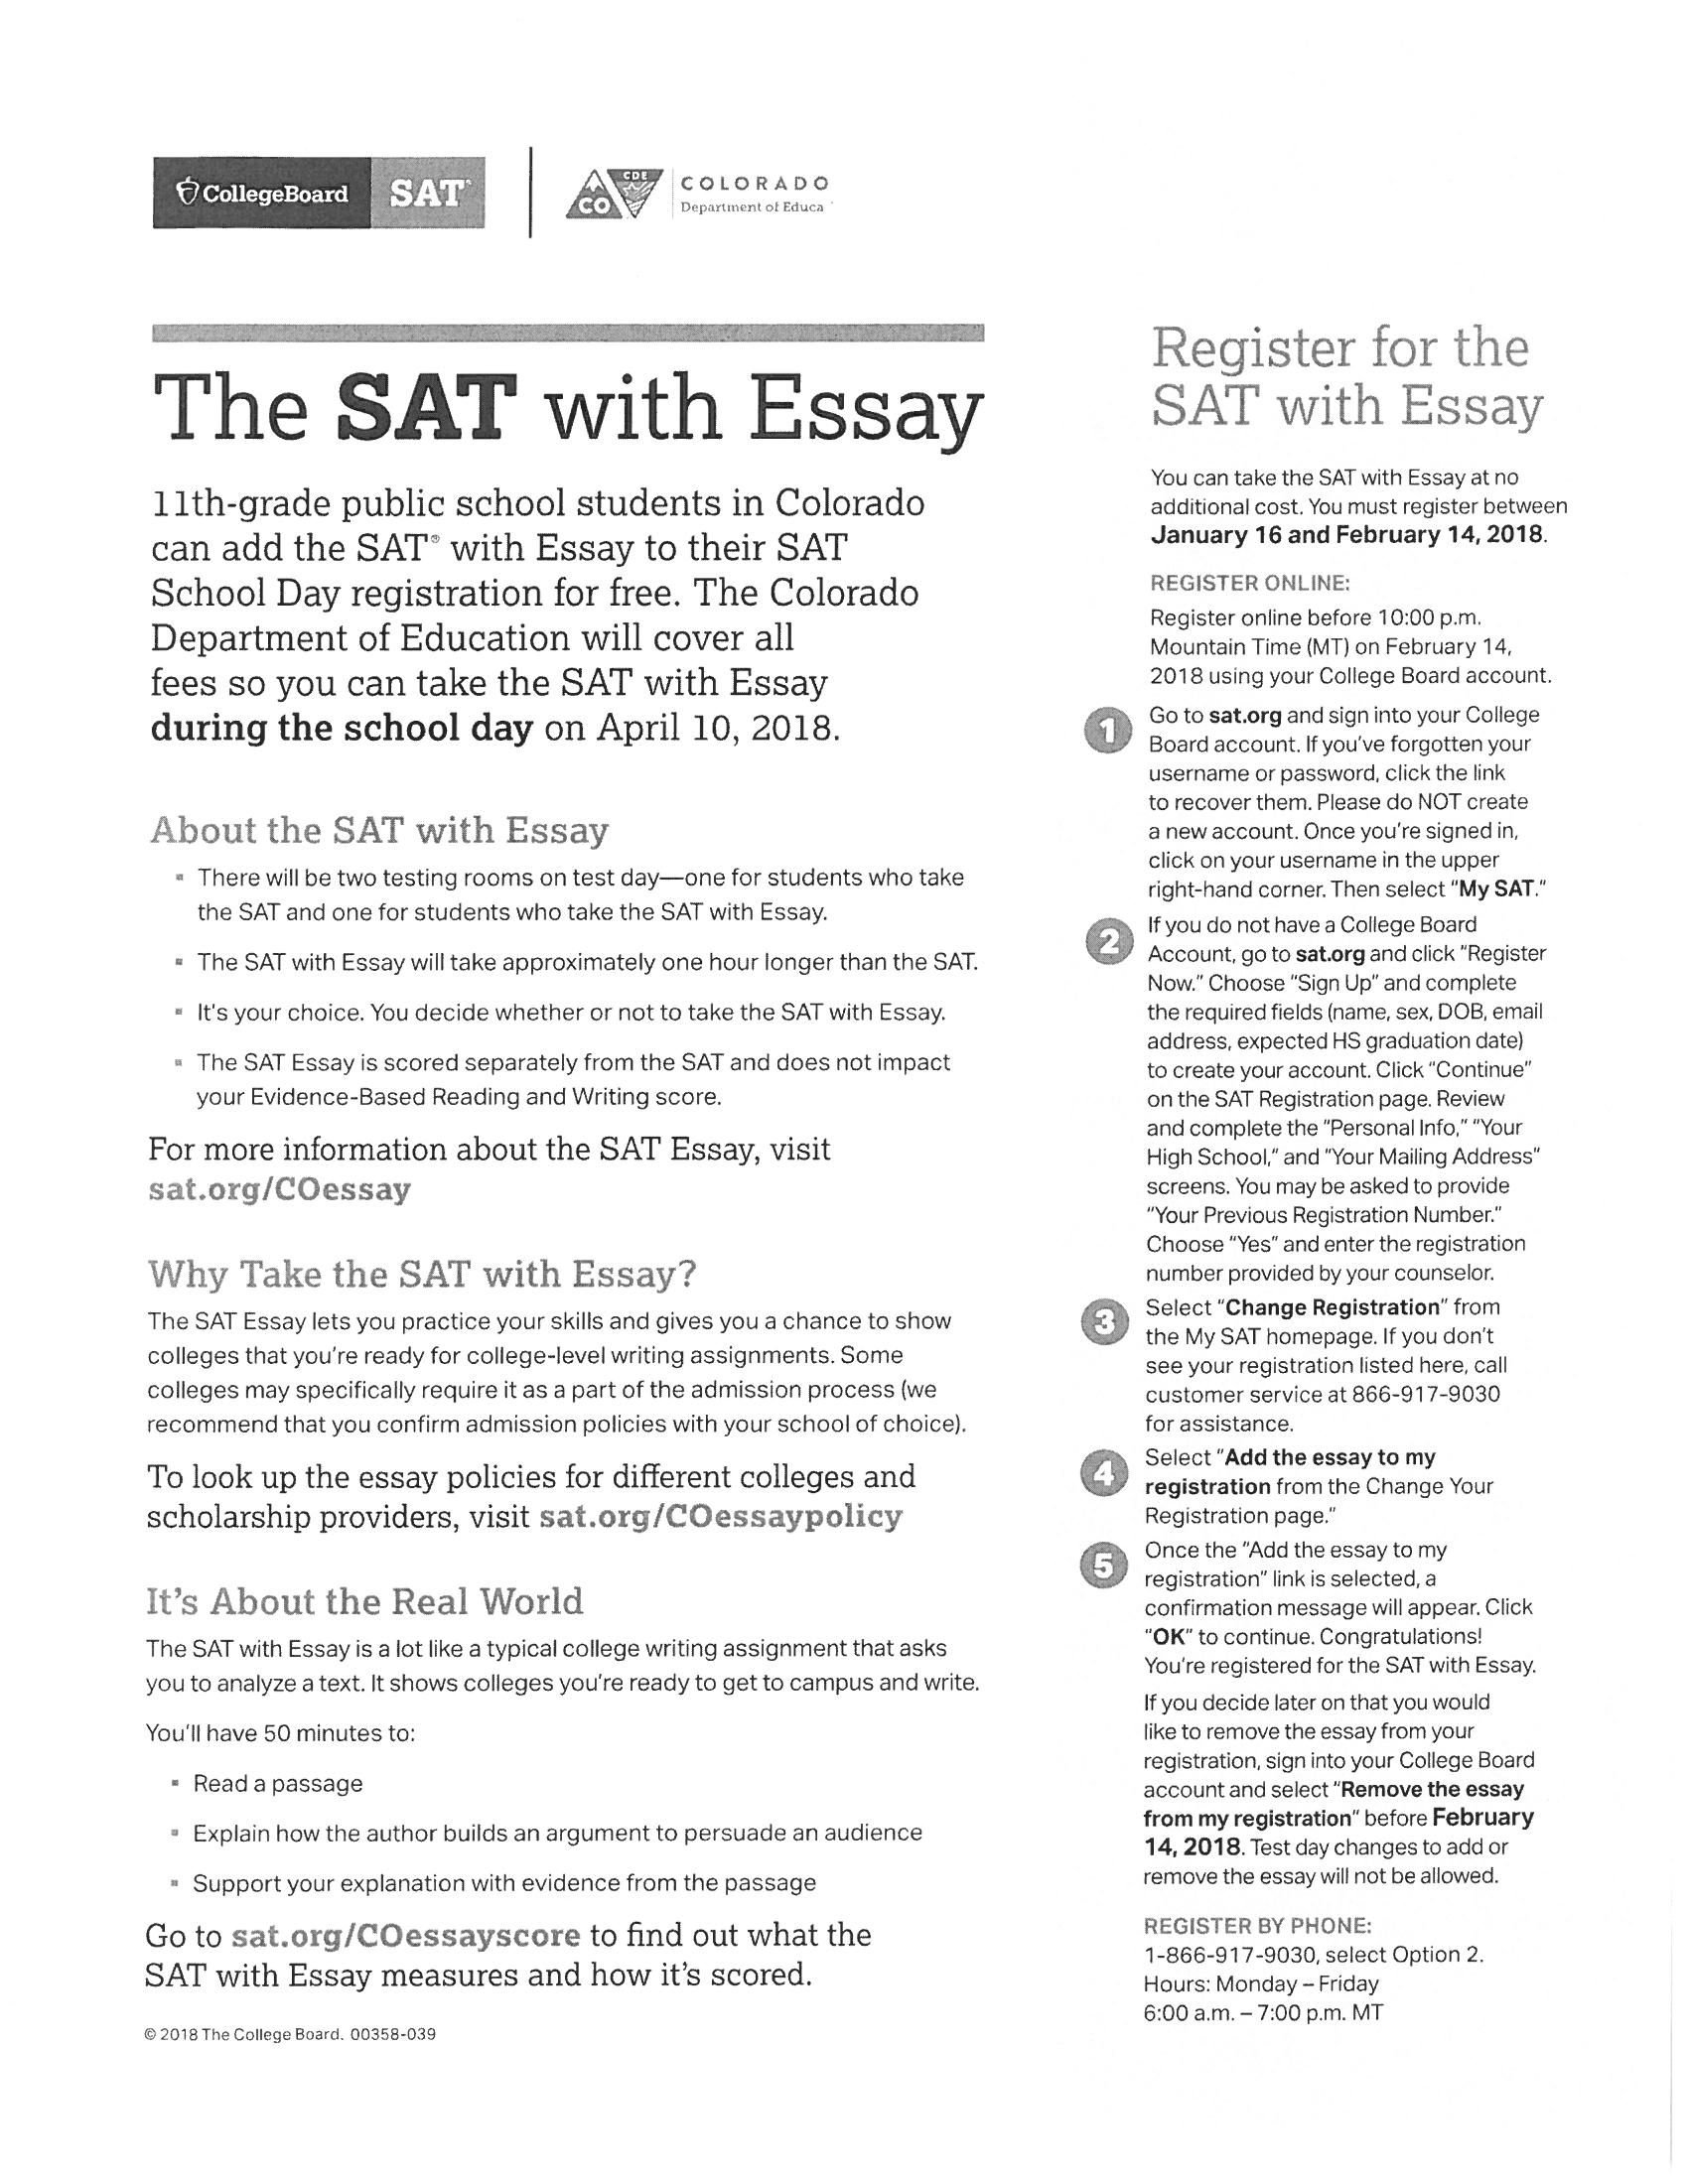 20 essay outstanding sat If you can string together a coherent essay, that's a plus before you  when i  took the actual sat, i got a 99th percentile score so did i  it allows them to  study slowly and consistently, the way the human brain learns best.